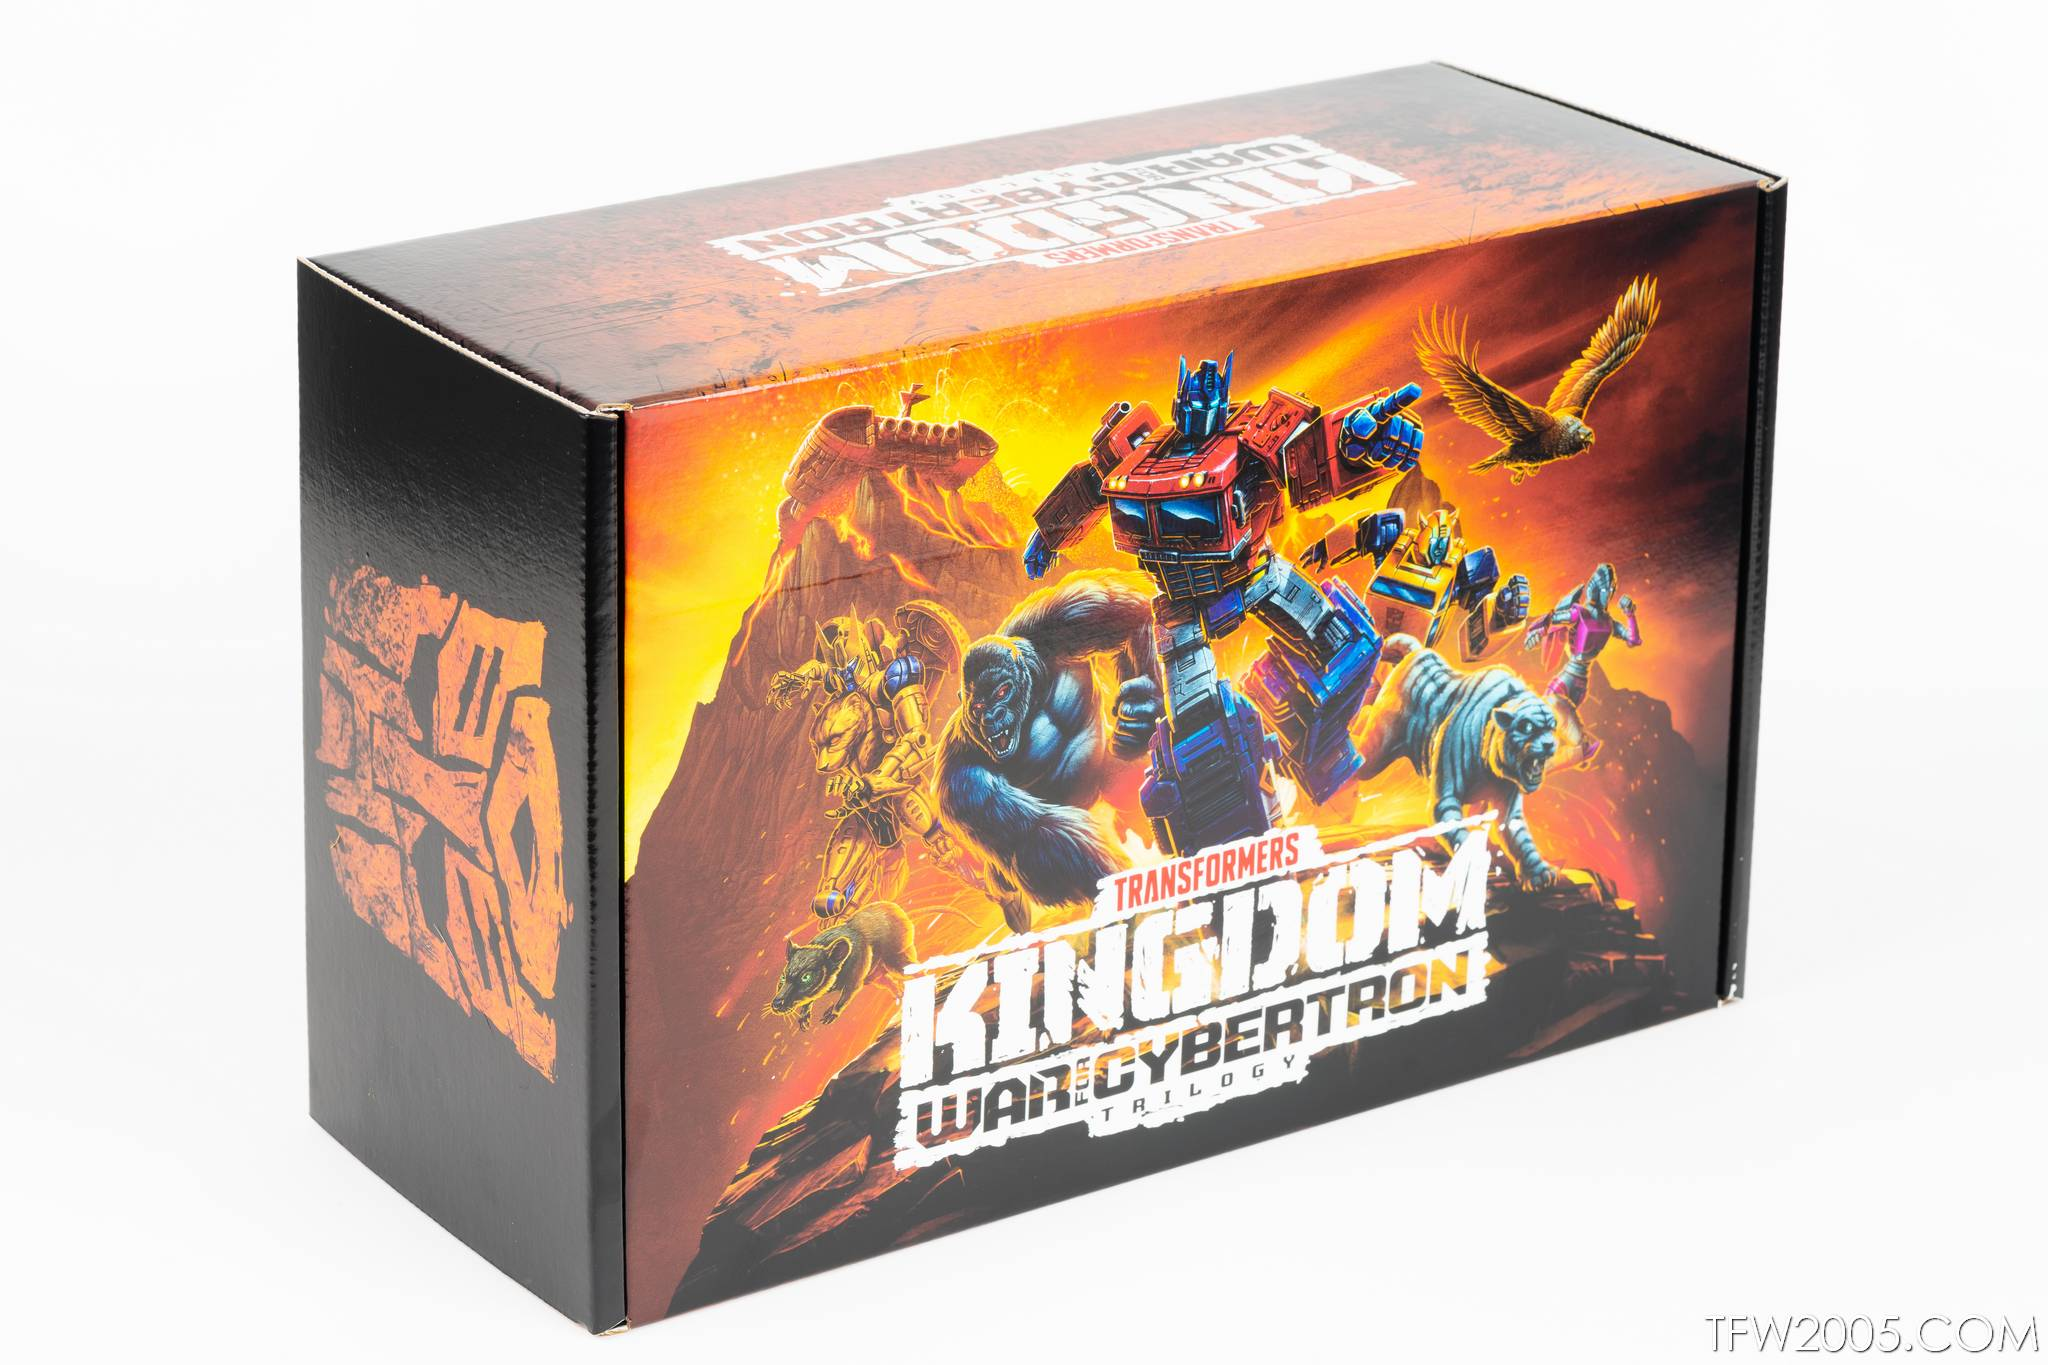 02 Box Transformers War For Cybertron Kingdom Promotional Box - Transformers News - Tfw2005